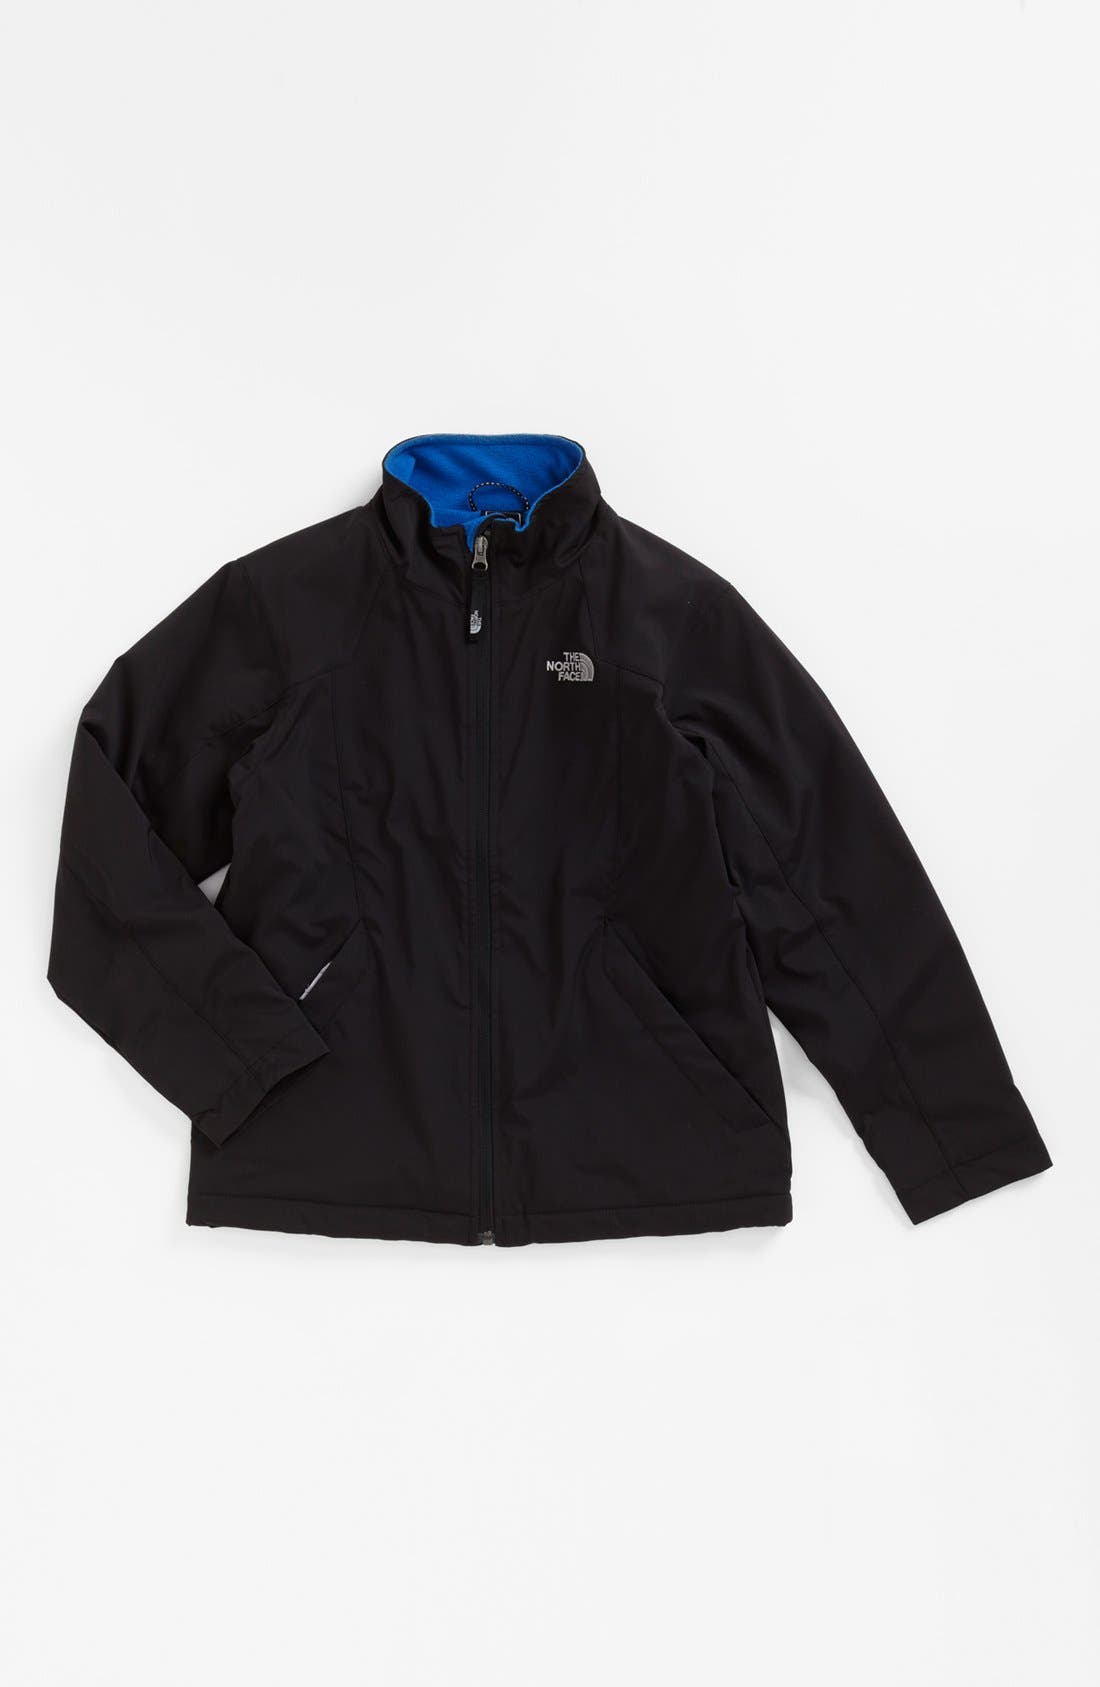 Main Image - The North Face 'Long Distance' Soft Shell Jacket (Big Boys)